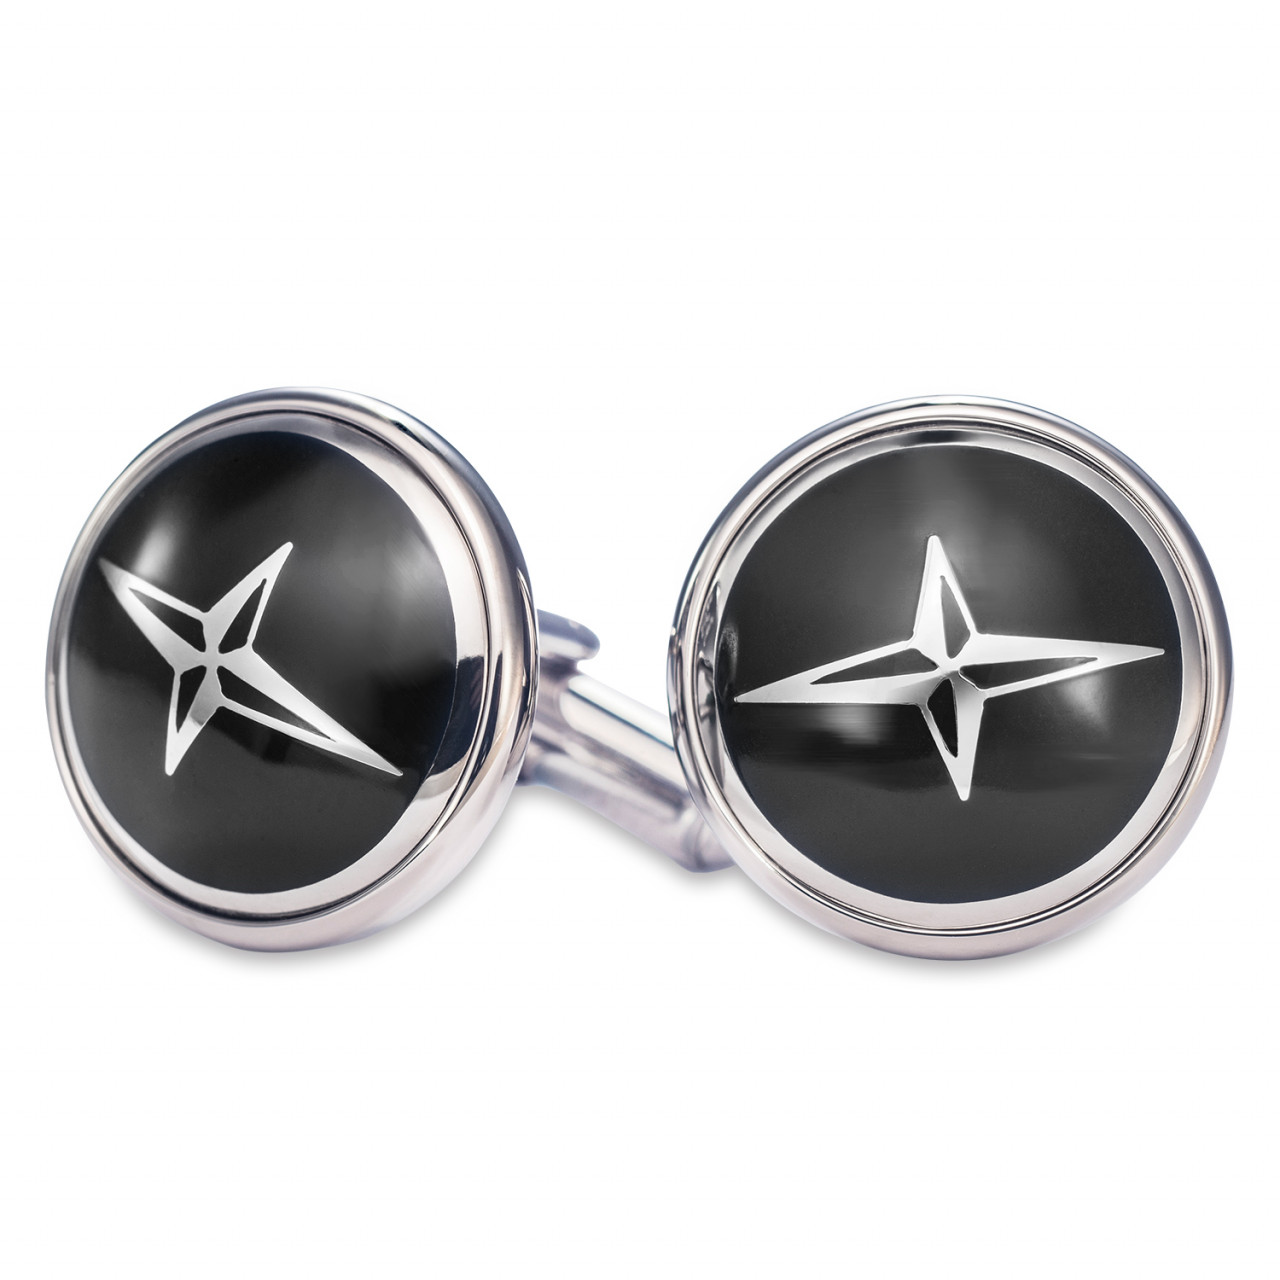 Cuff links black